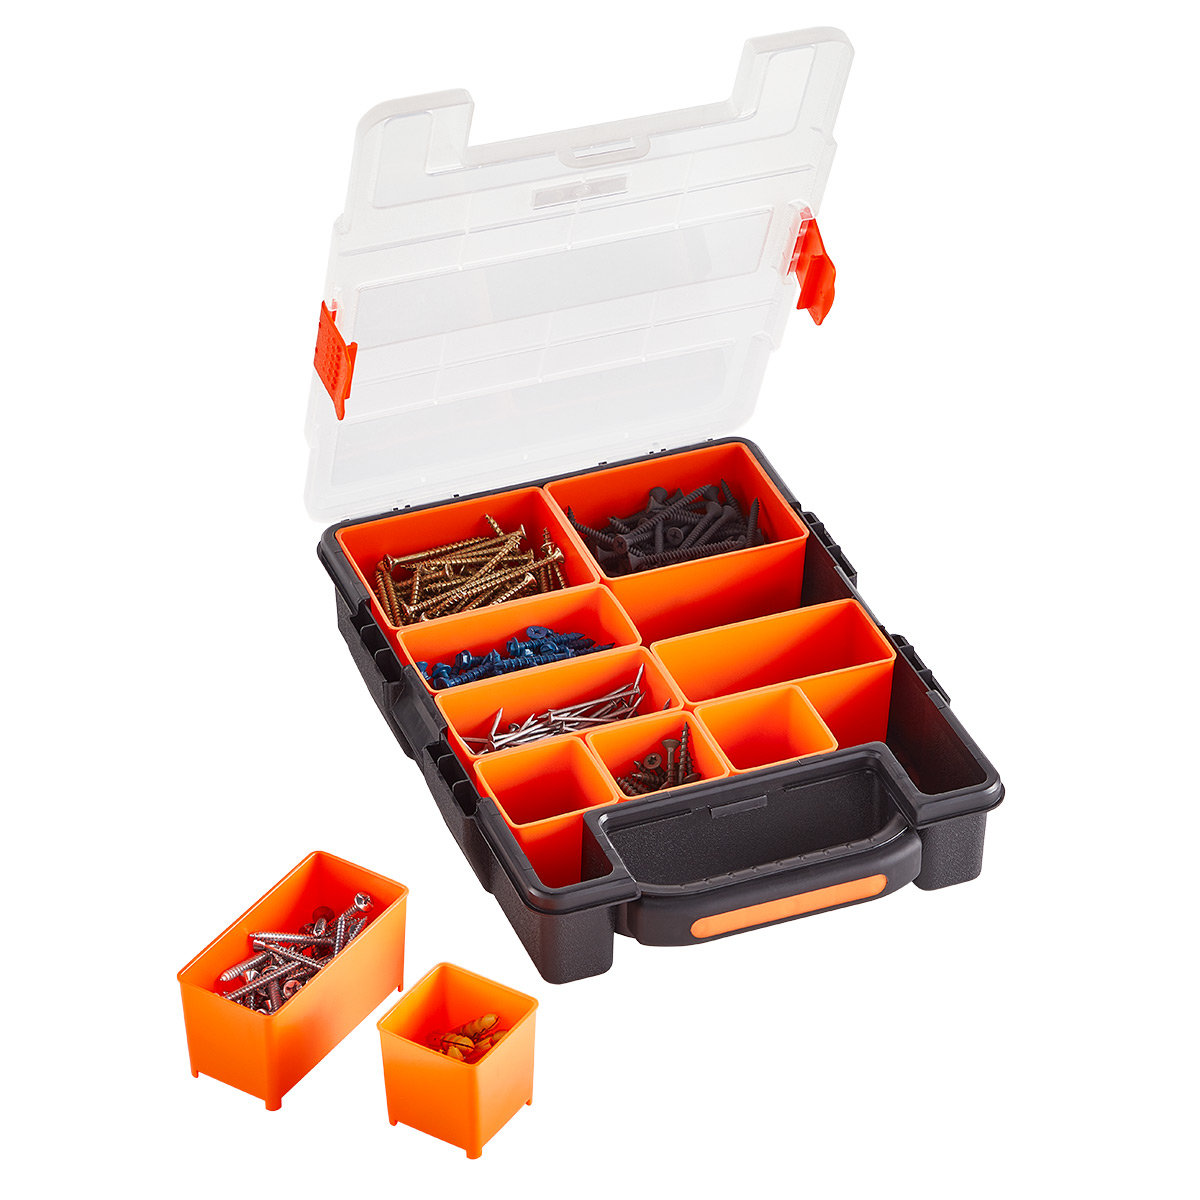 Small Parts Organizer with Removable Bins